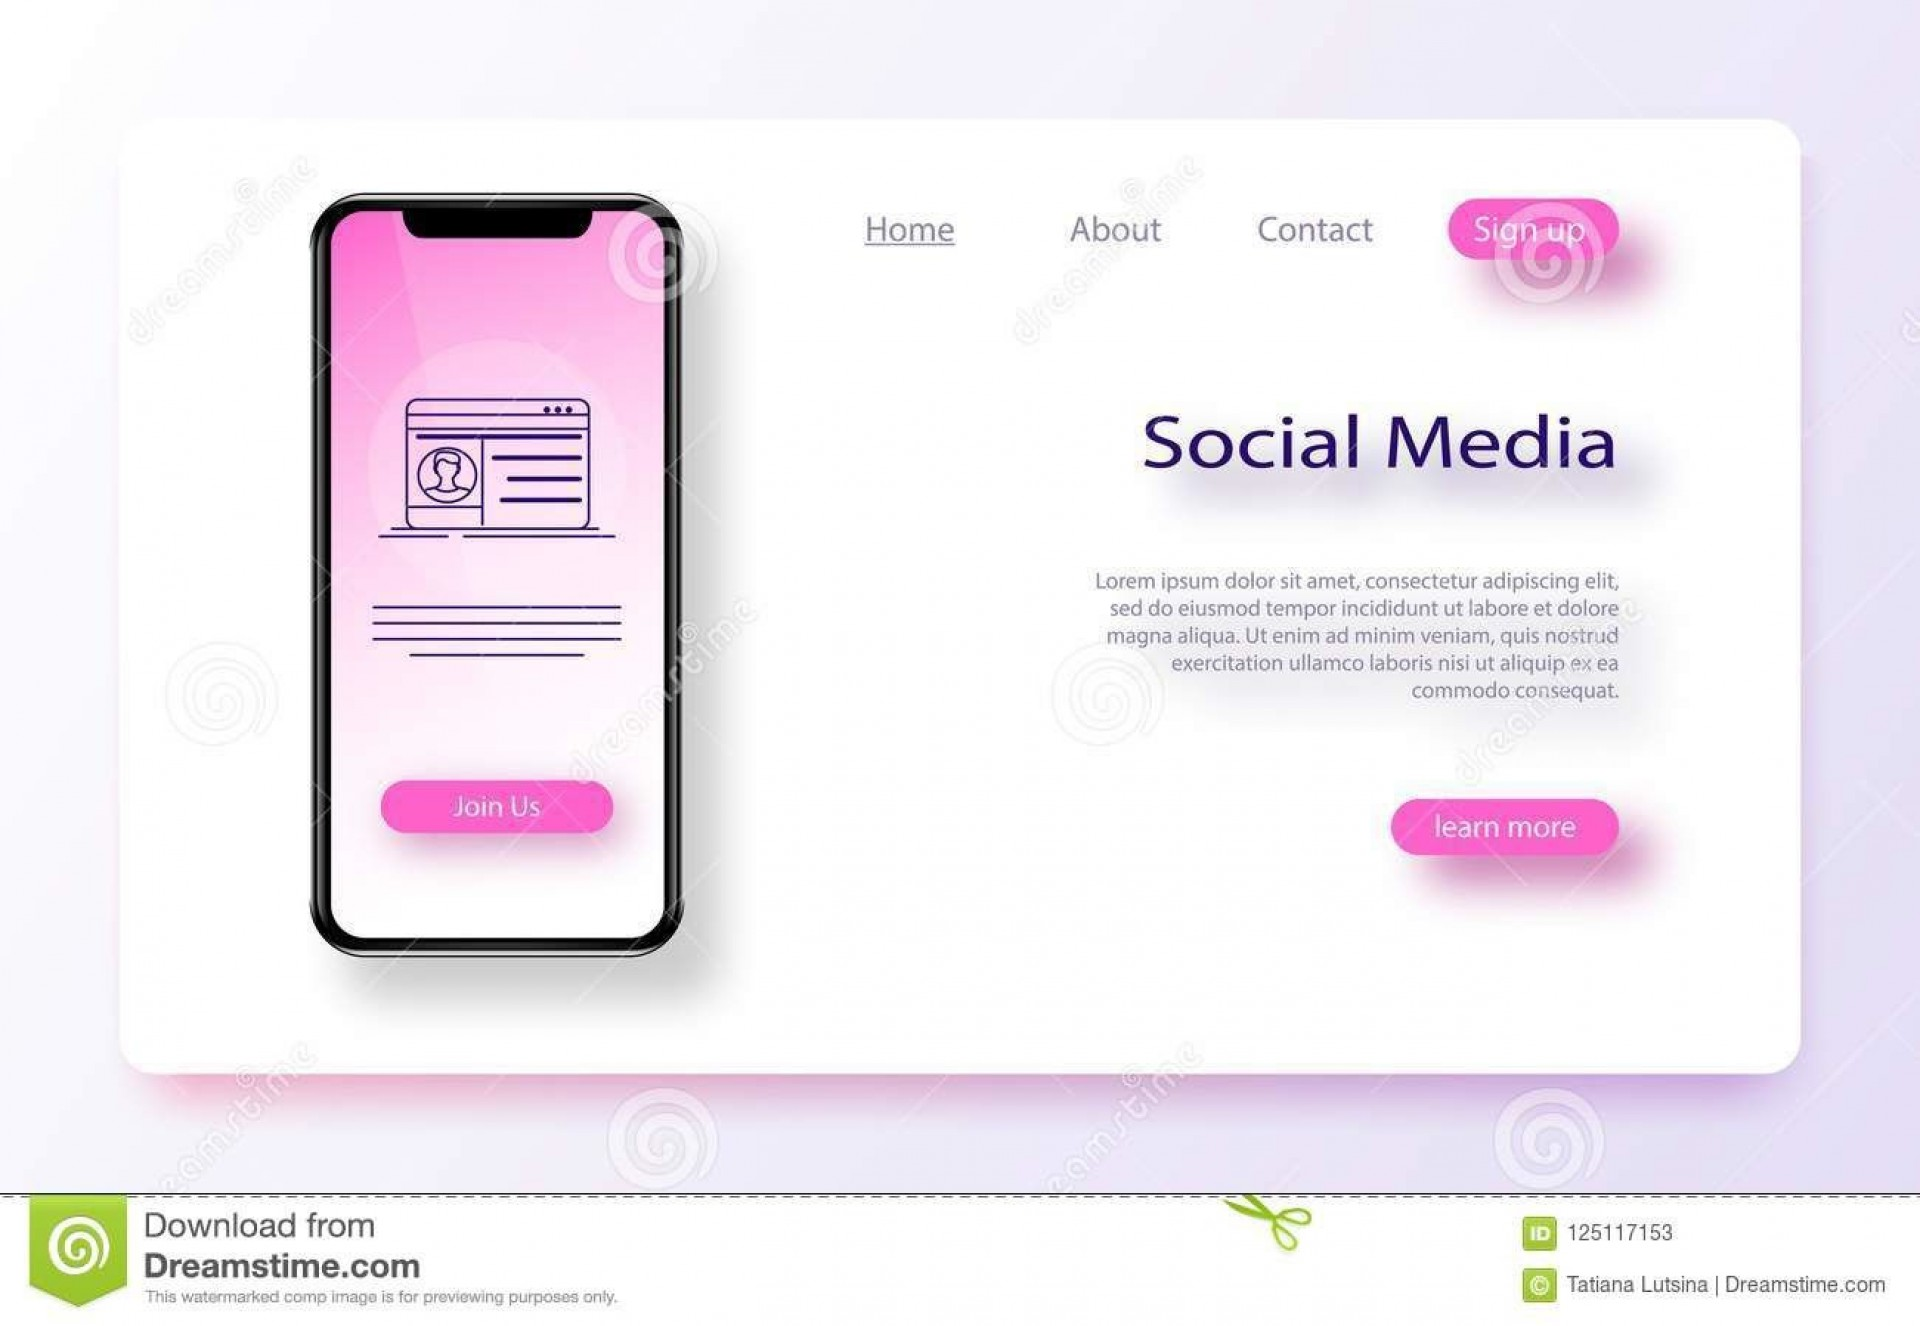 009 Impressive Social Media Web Template Example  Templates Best Website Free Download1920